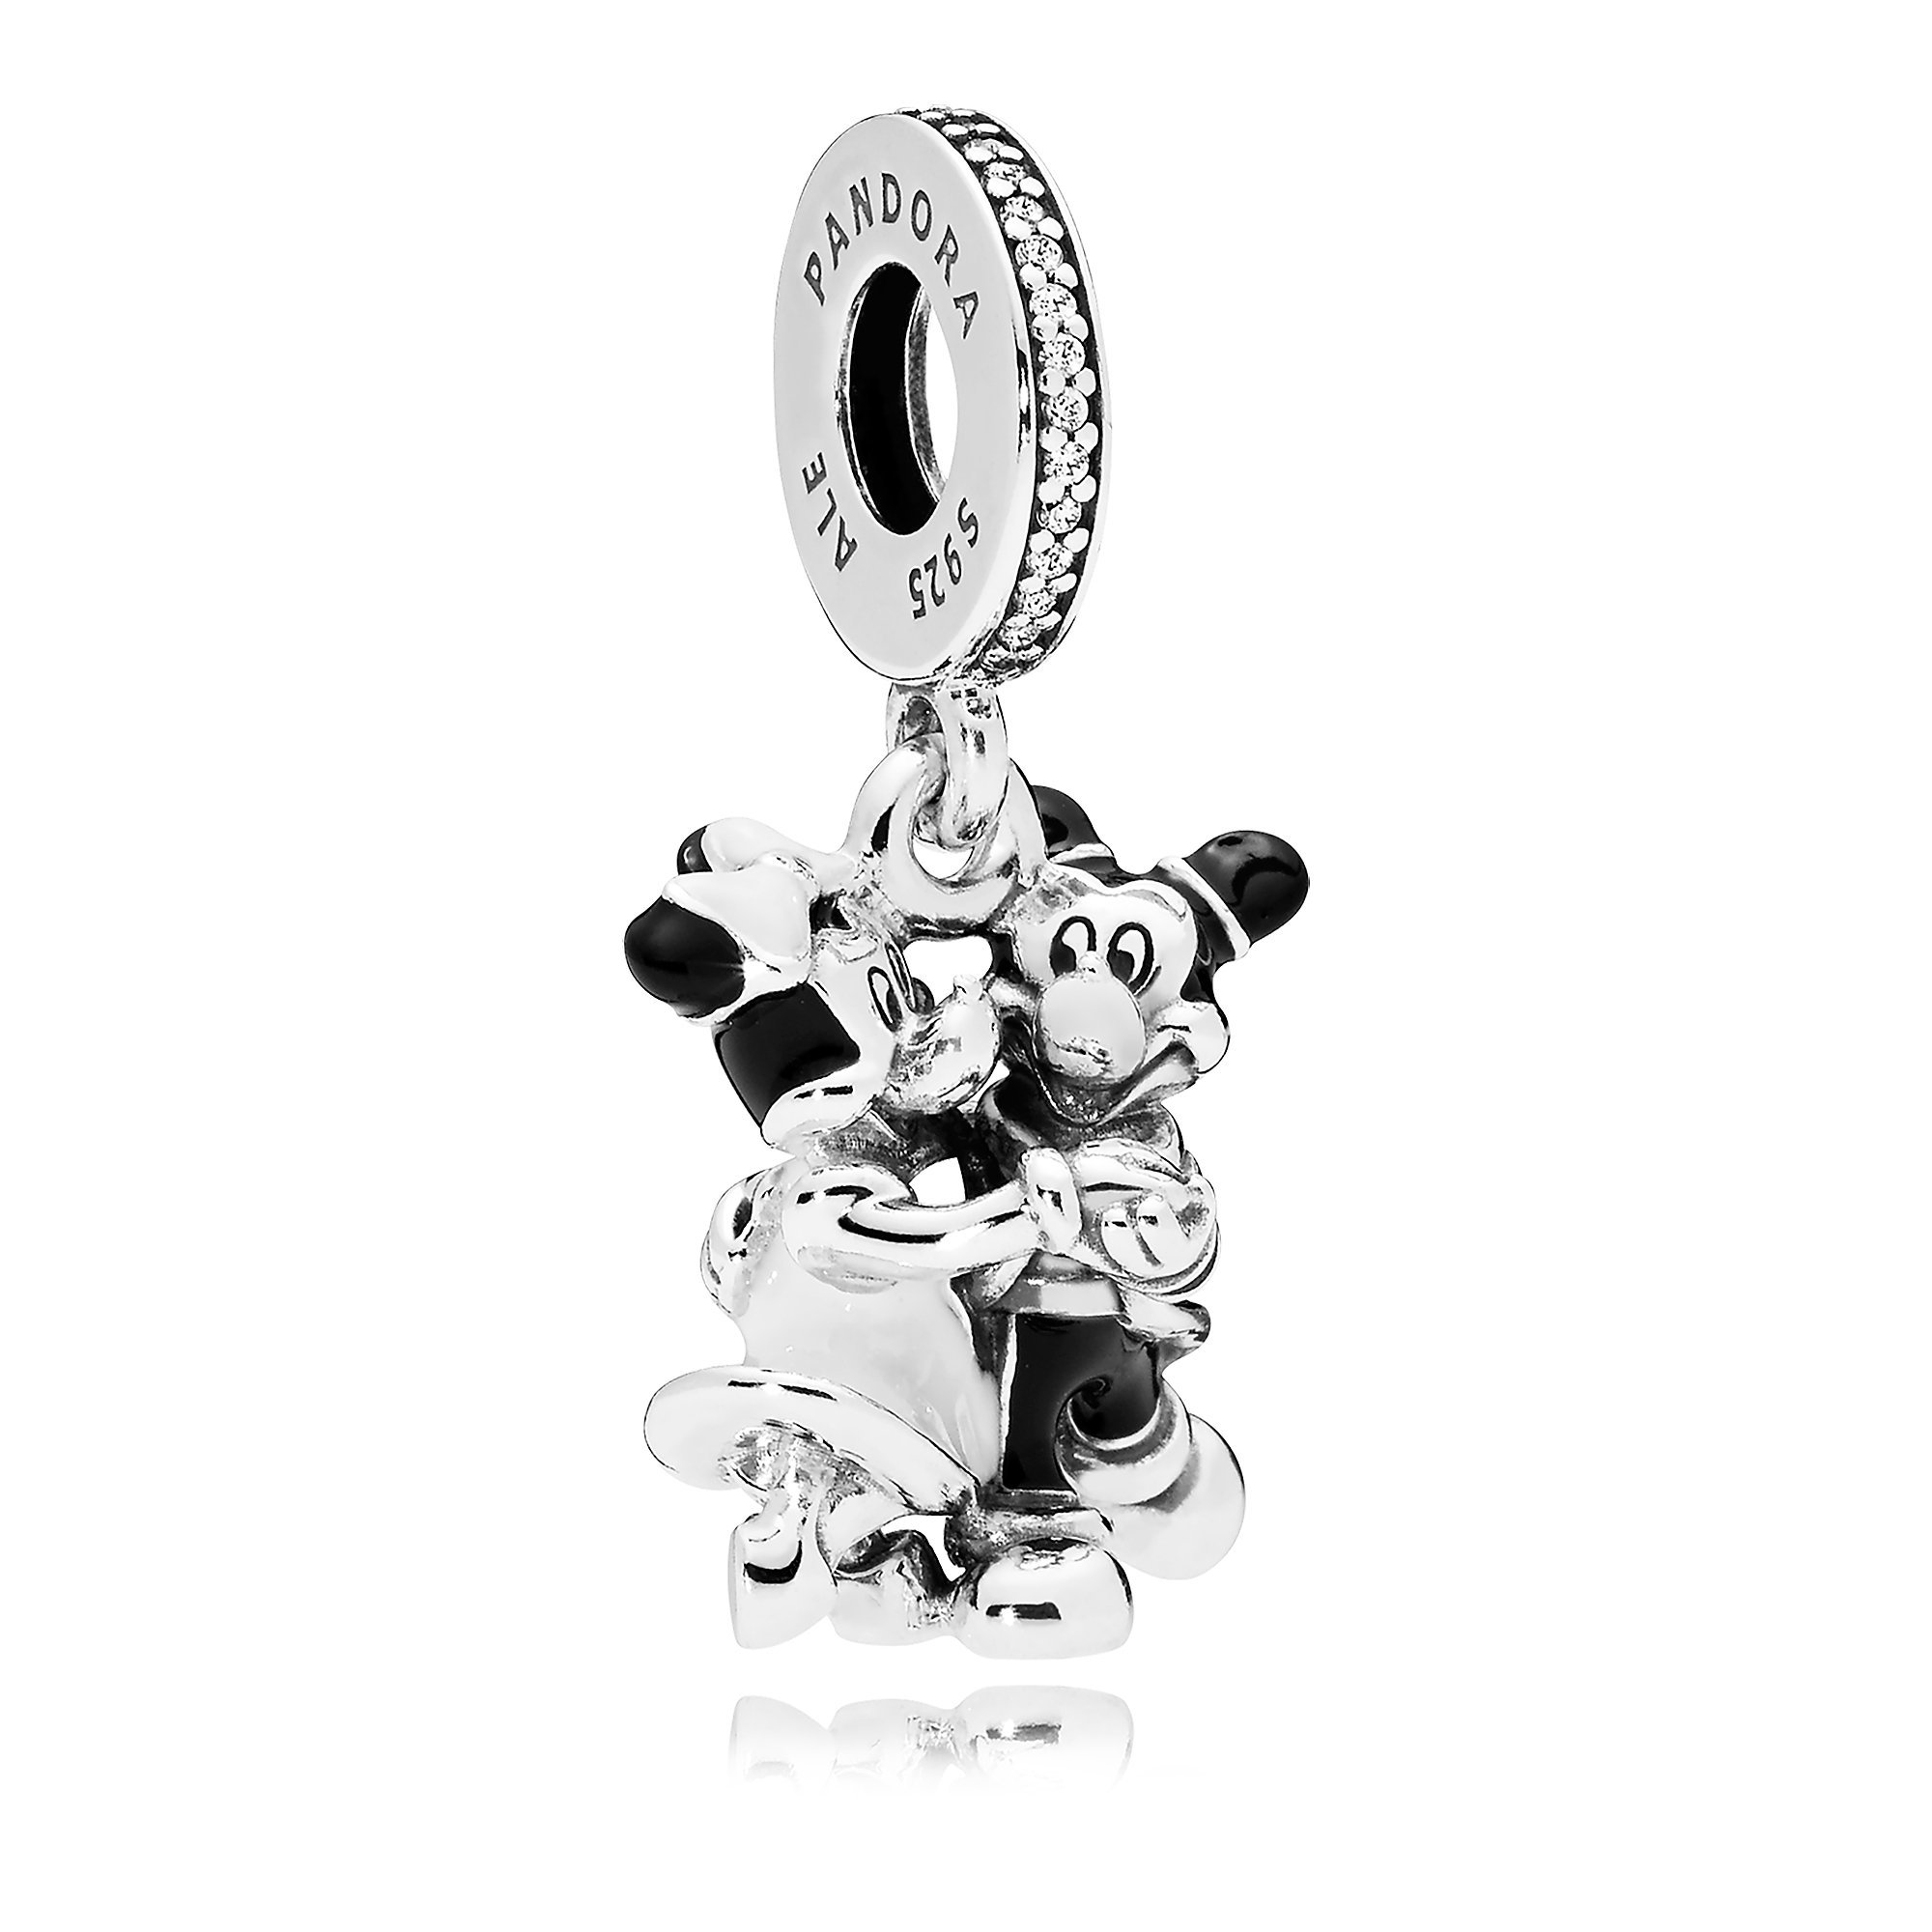 a0cabe72f ... ireland product image of mickey and minnie mouse dangle charm by pandora  1 592d5 8c7fc ...